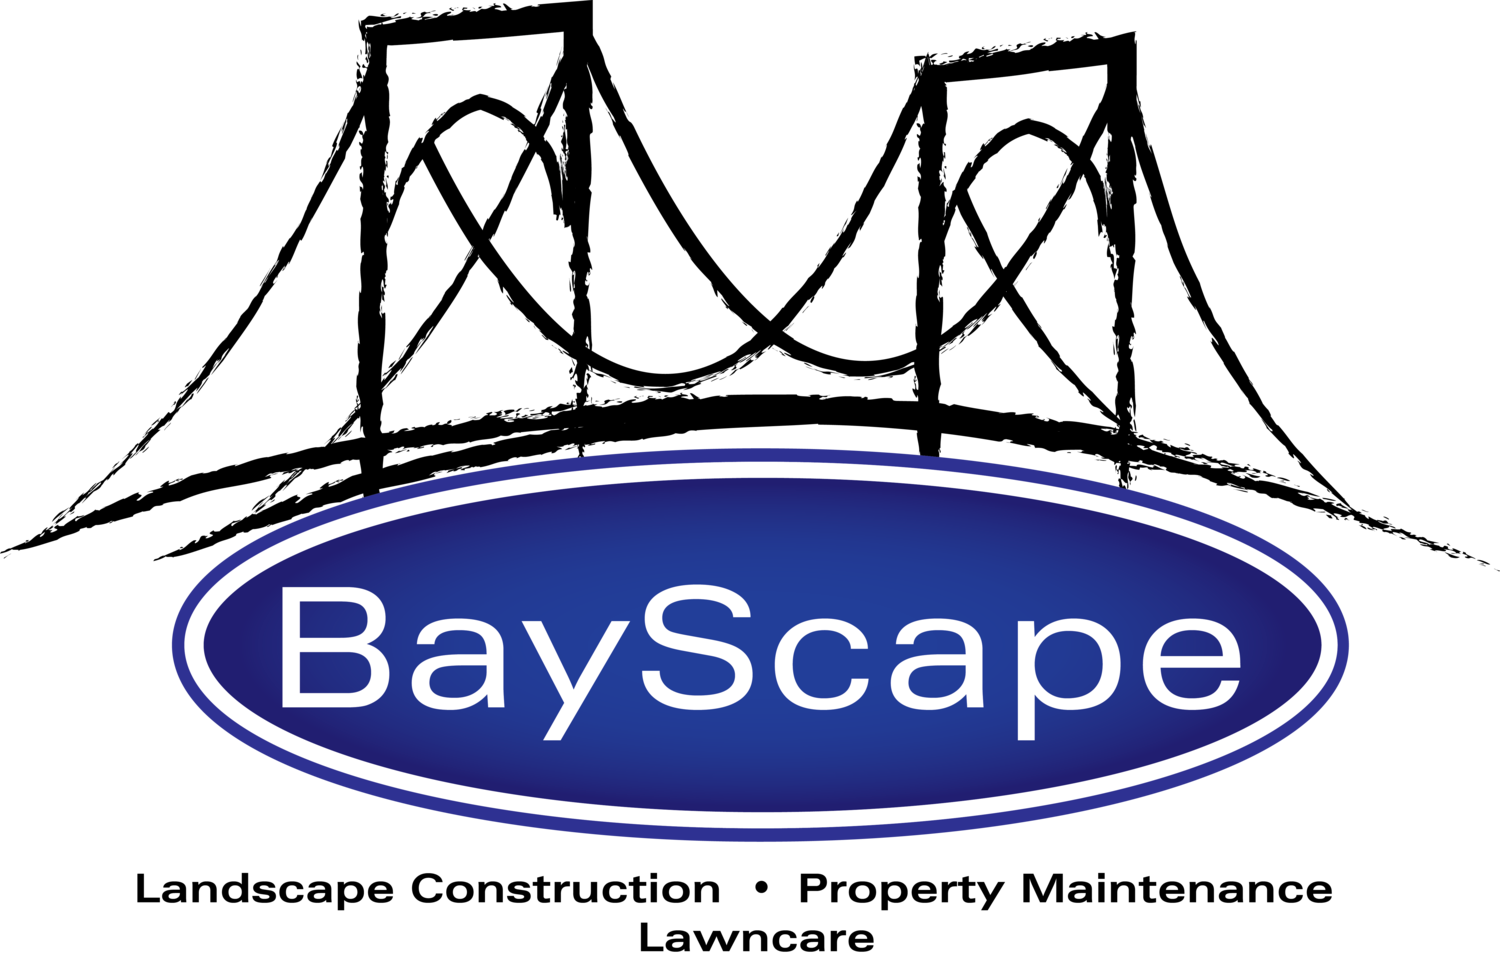 Bayscape Landscaping & Construction